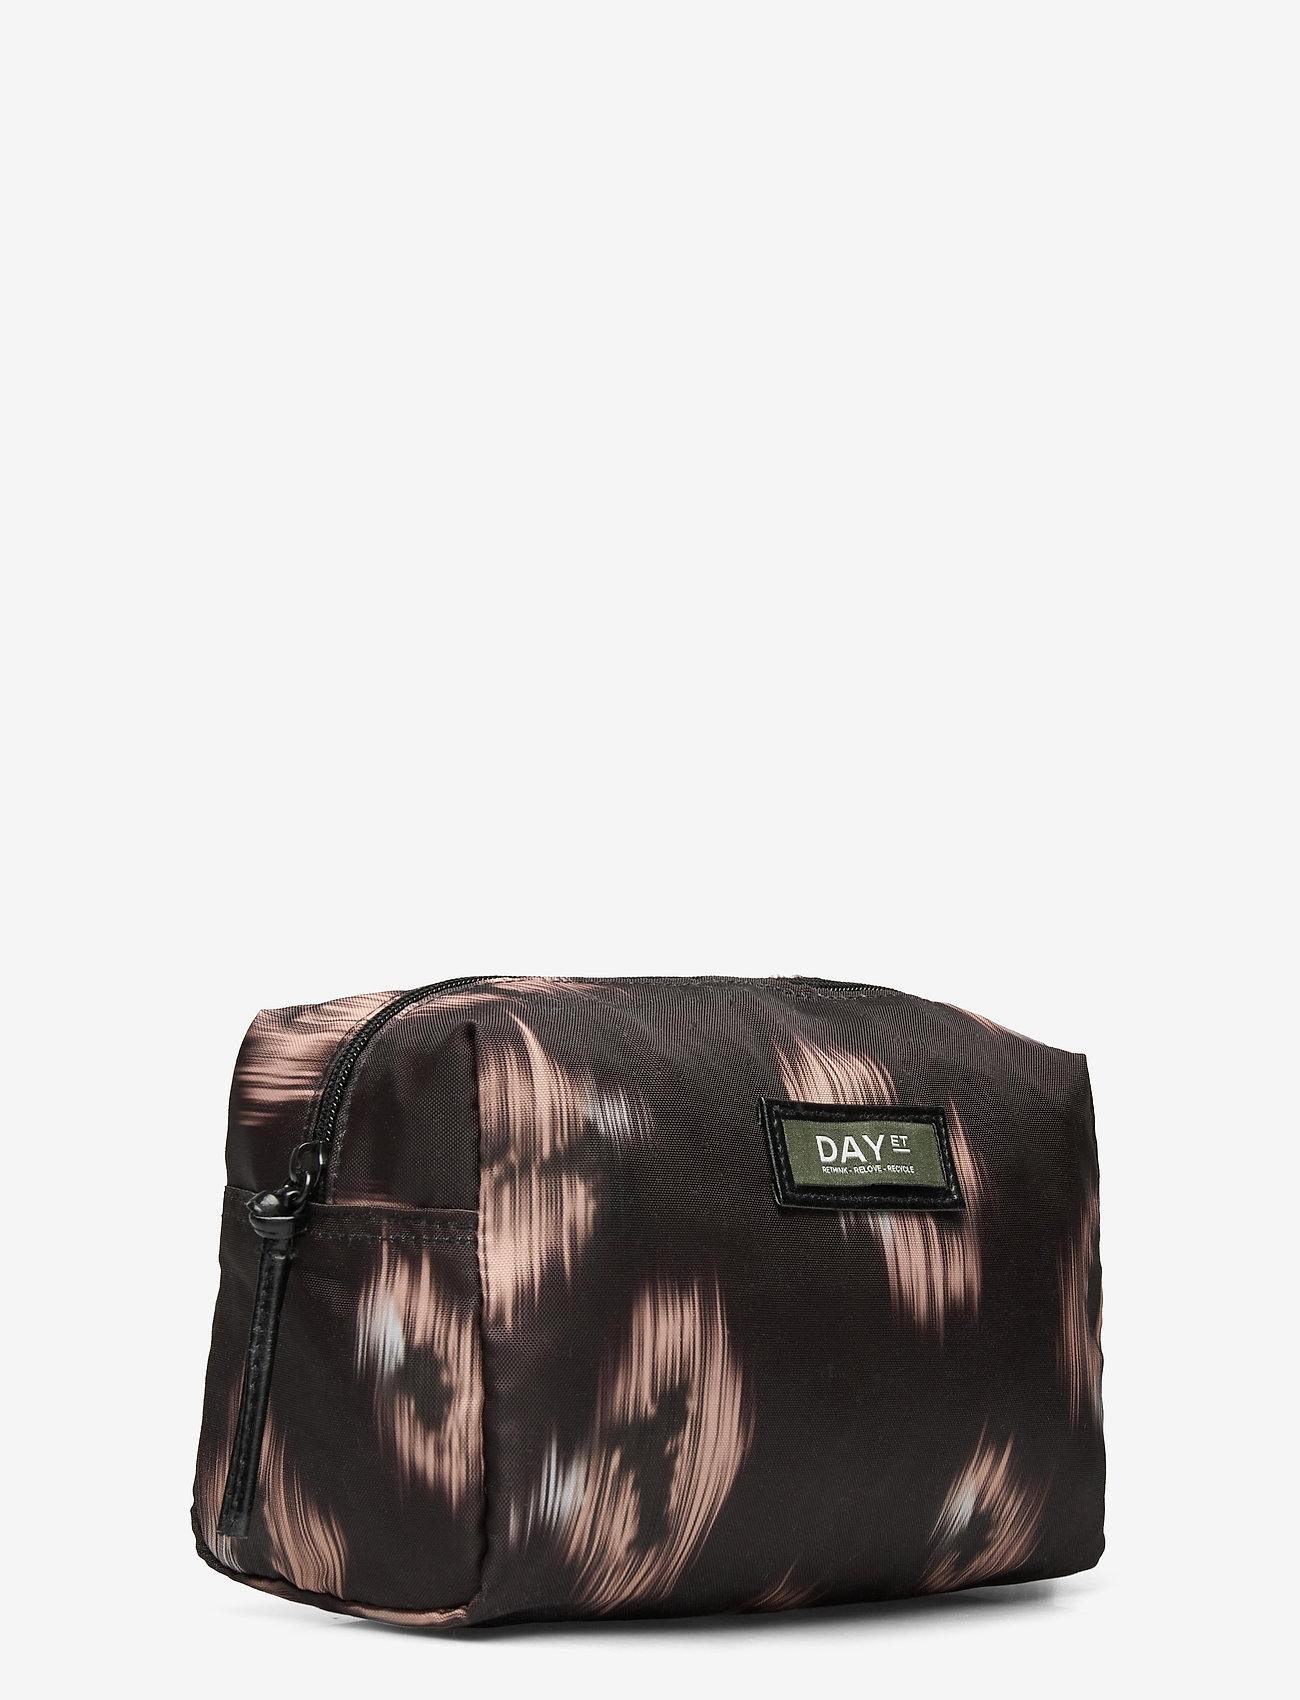 DAY et - Day Gweneth RE-P Ikat Beauty - cosmetic bags - black - 2